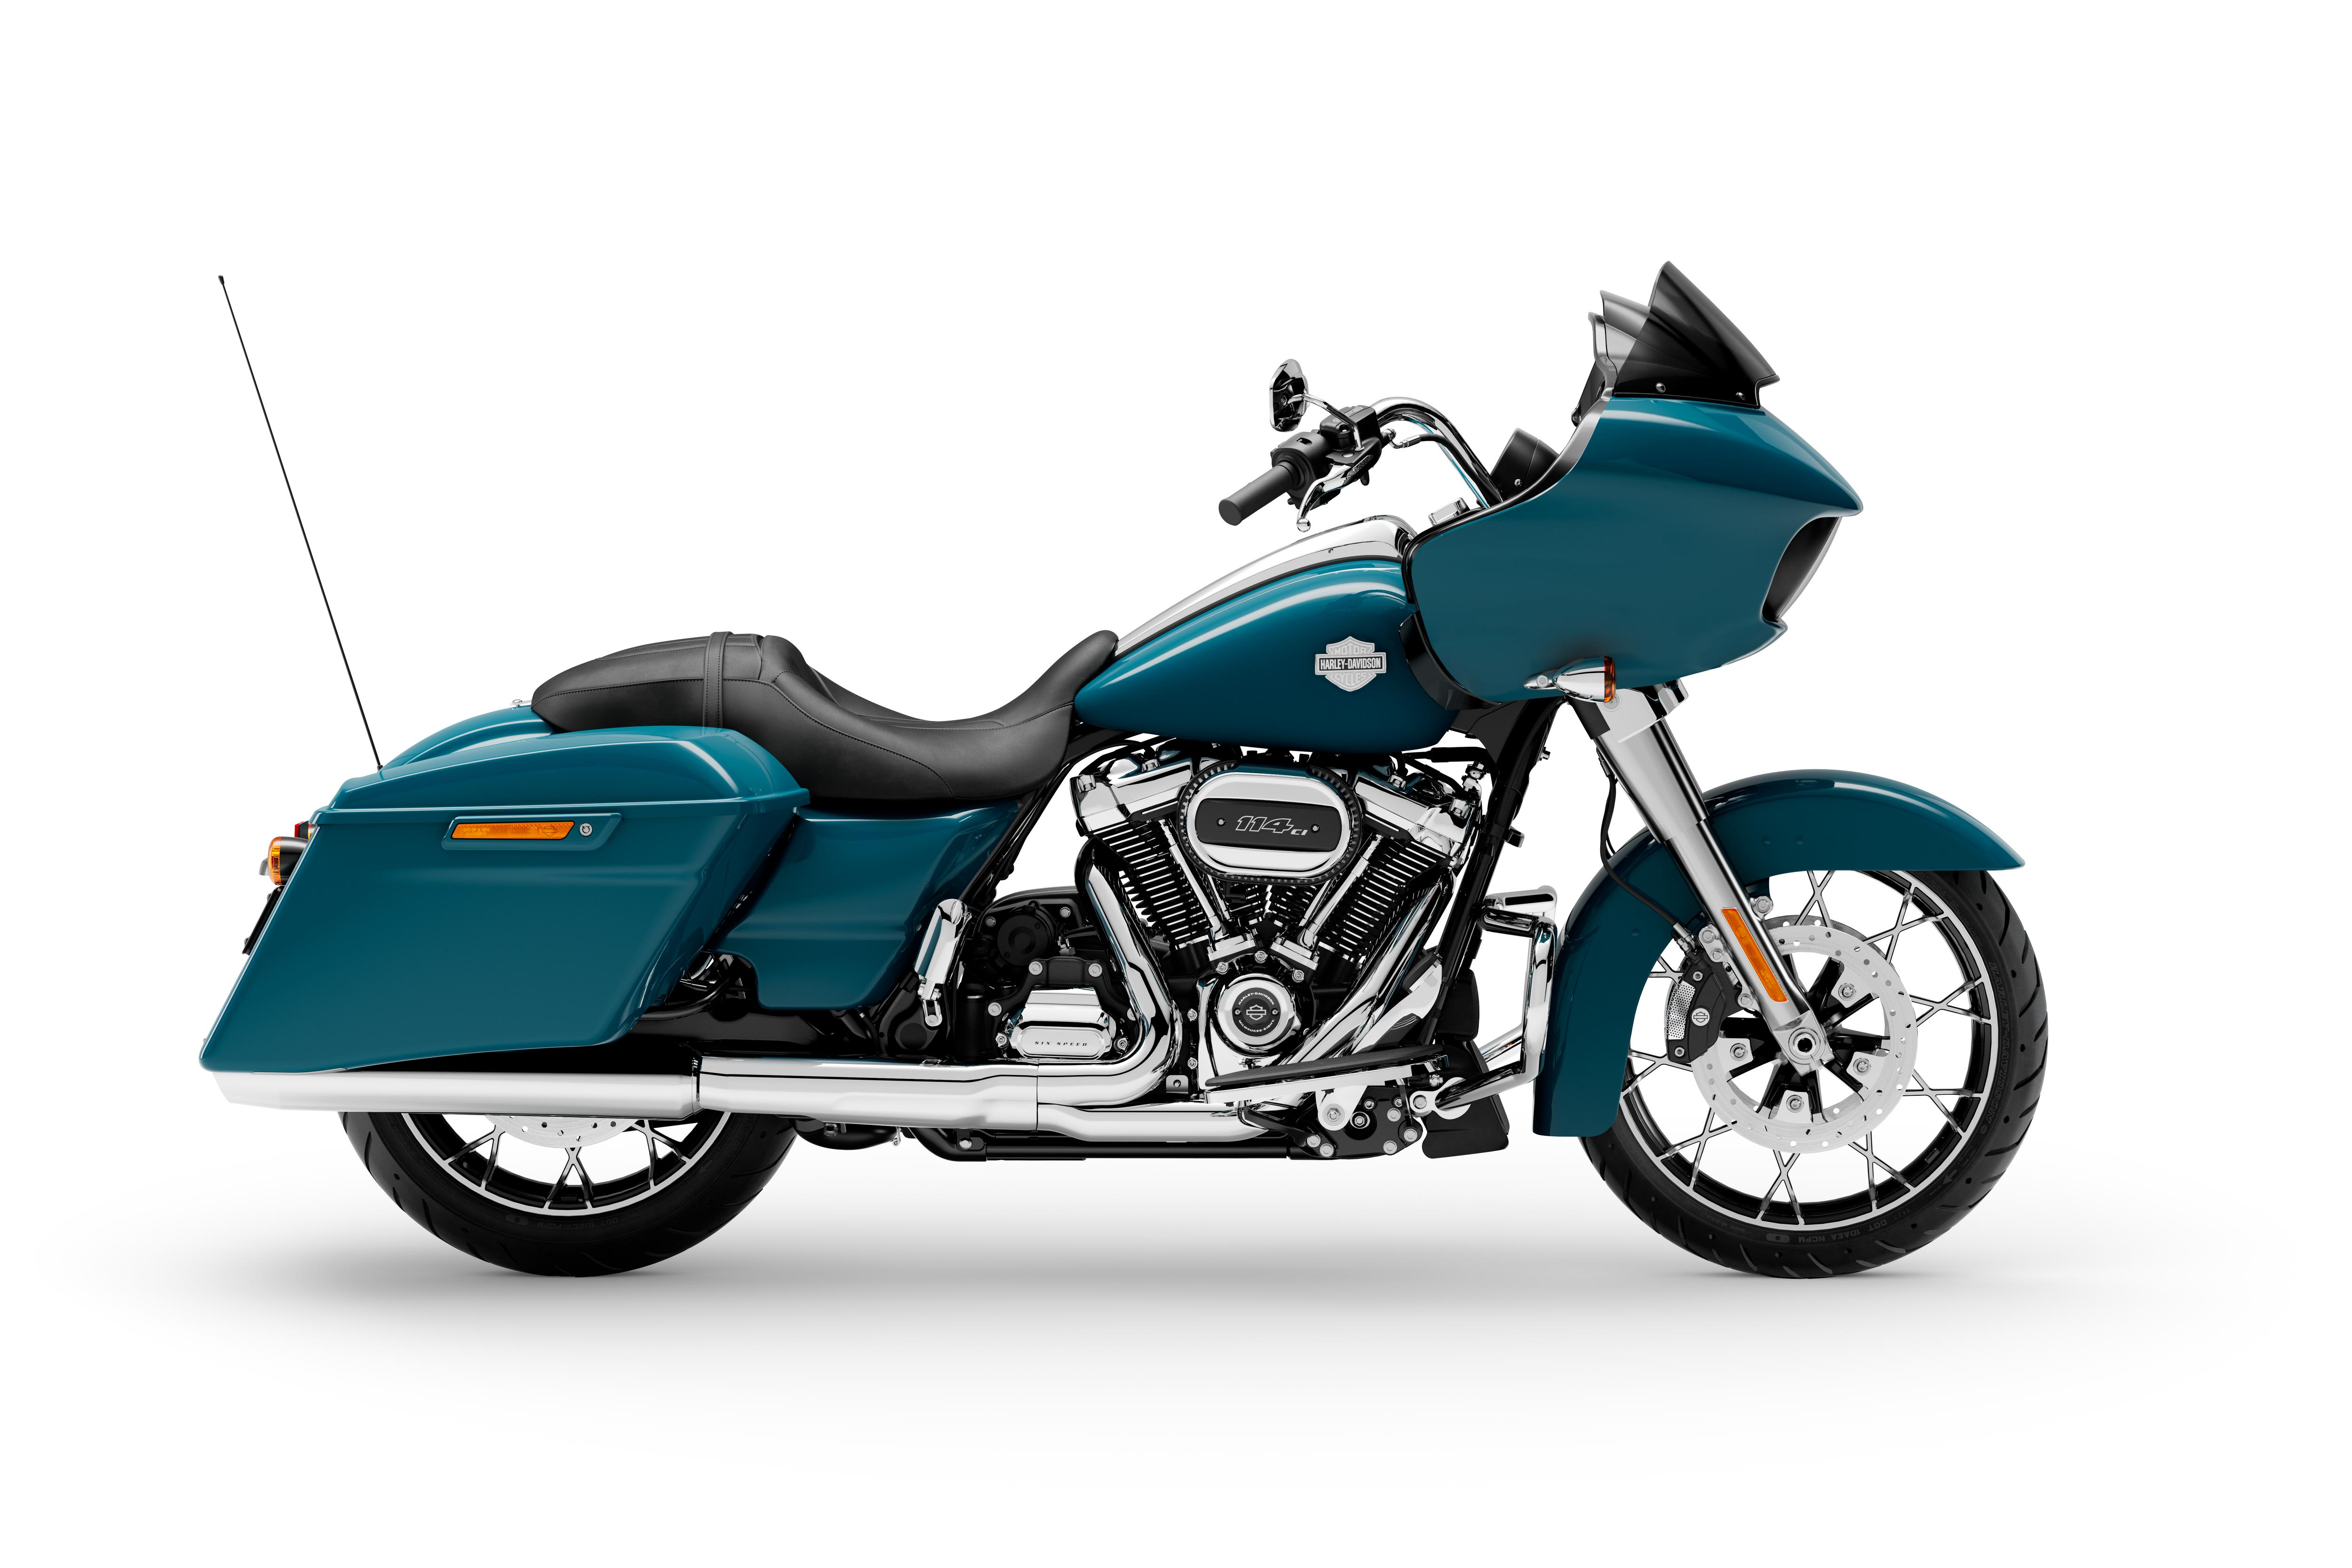 FLTRXS Road Glide Special ab 29.295,00 Euro